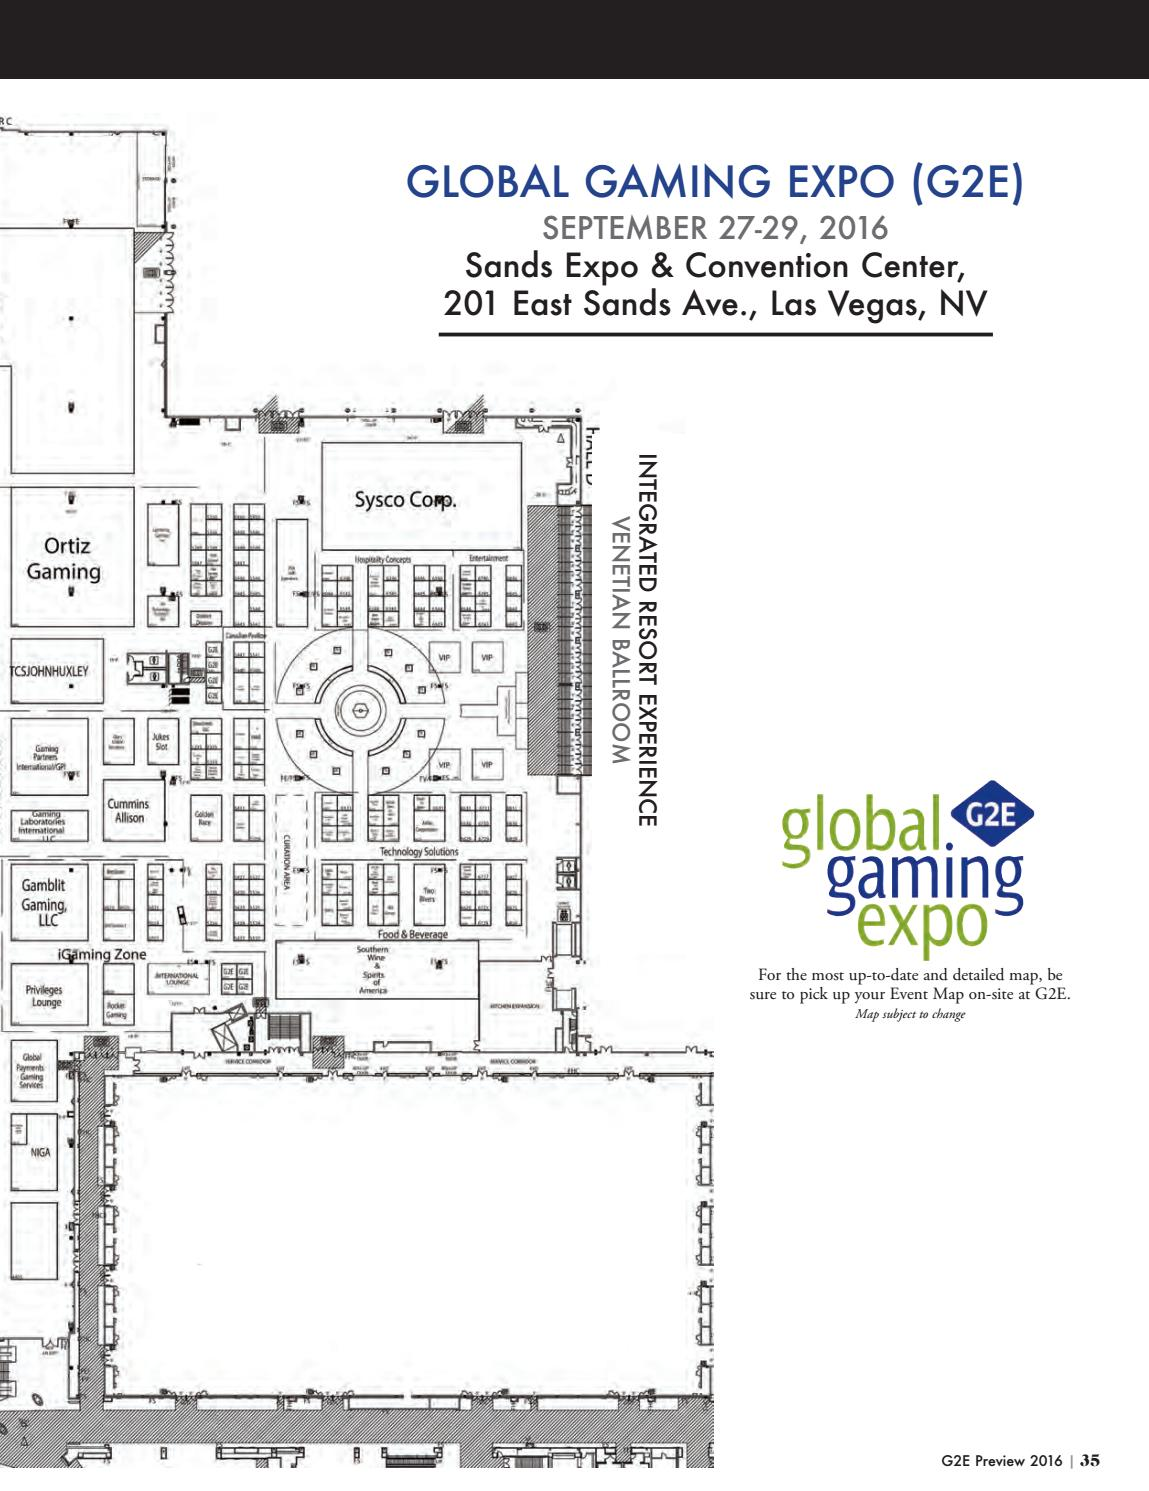 G2e Preview 2016 by Global Gaming Business - issuu on sands hotel las vegas, marina bay sands map, sands expo center, sands expo floor plan, sands casino map, sands showroom las vegas,